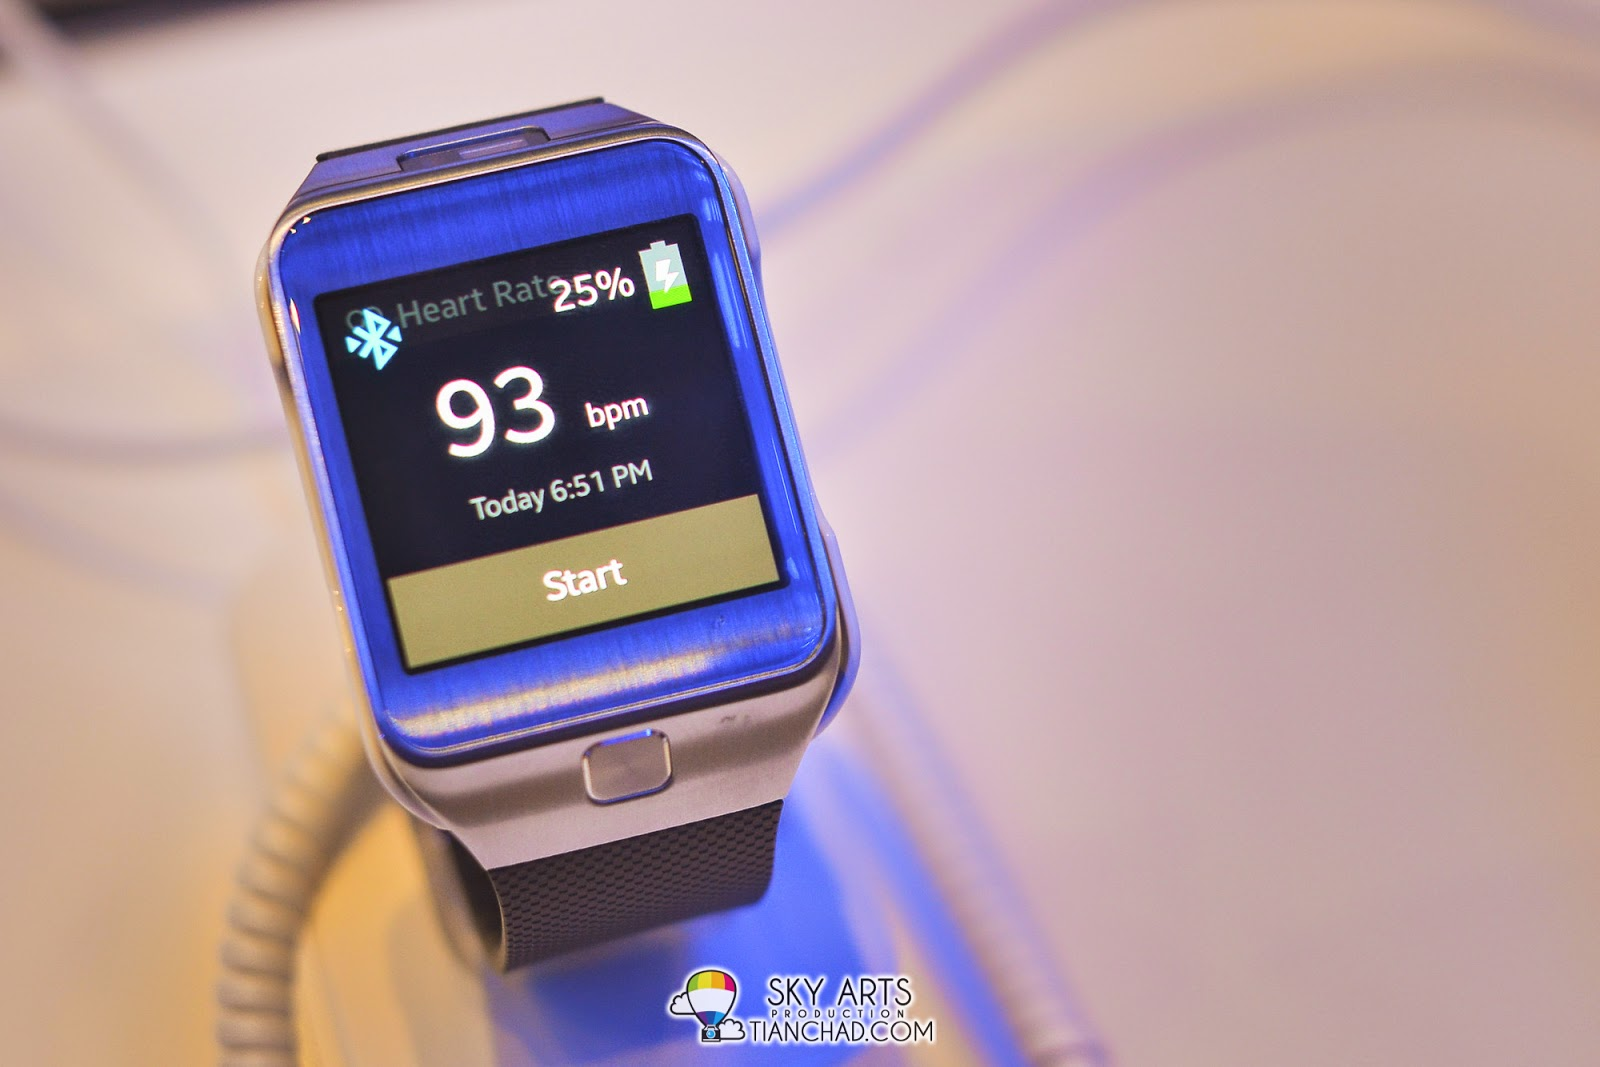 Samsung Gear 2 now have a button at the bottom of the screen instead at the side. Definitely convenient design for us